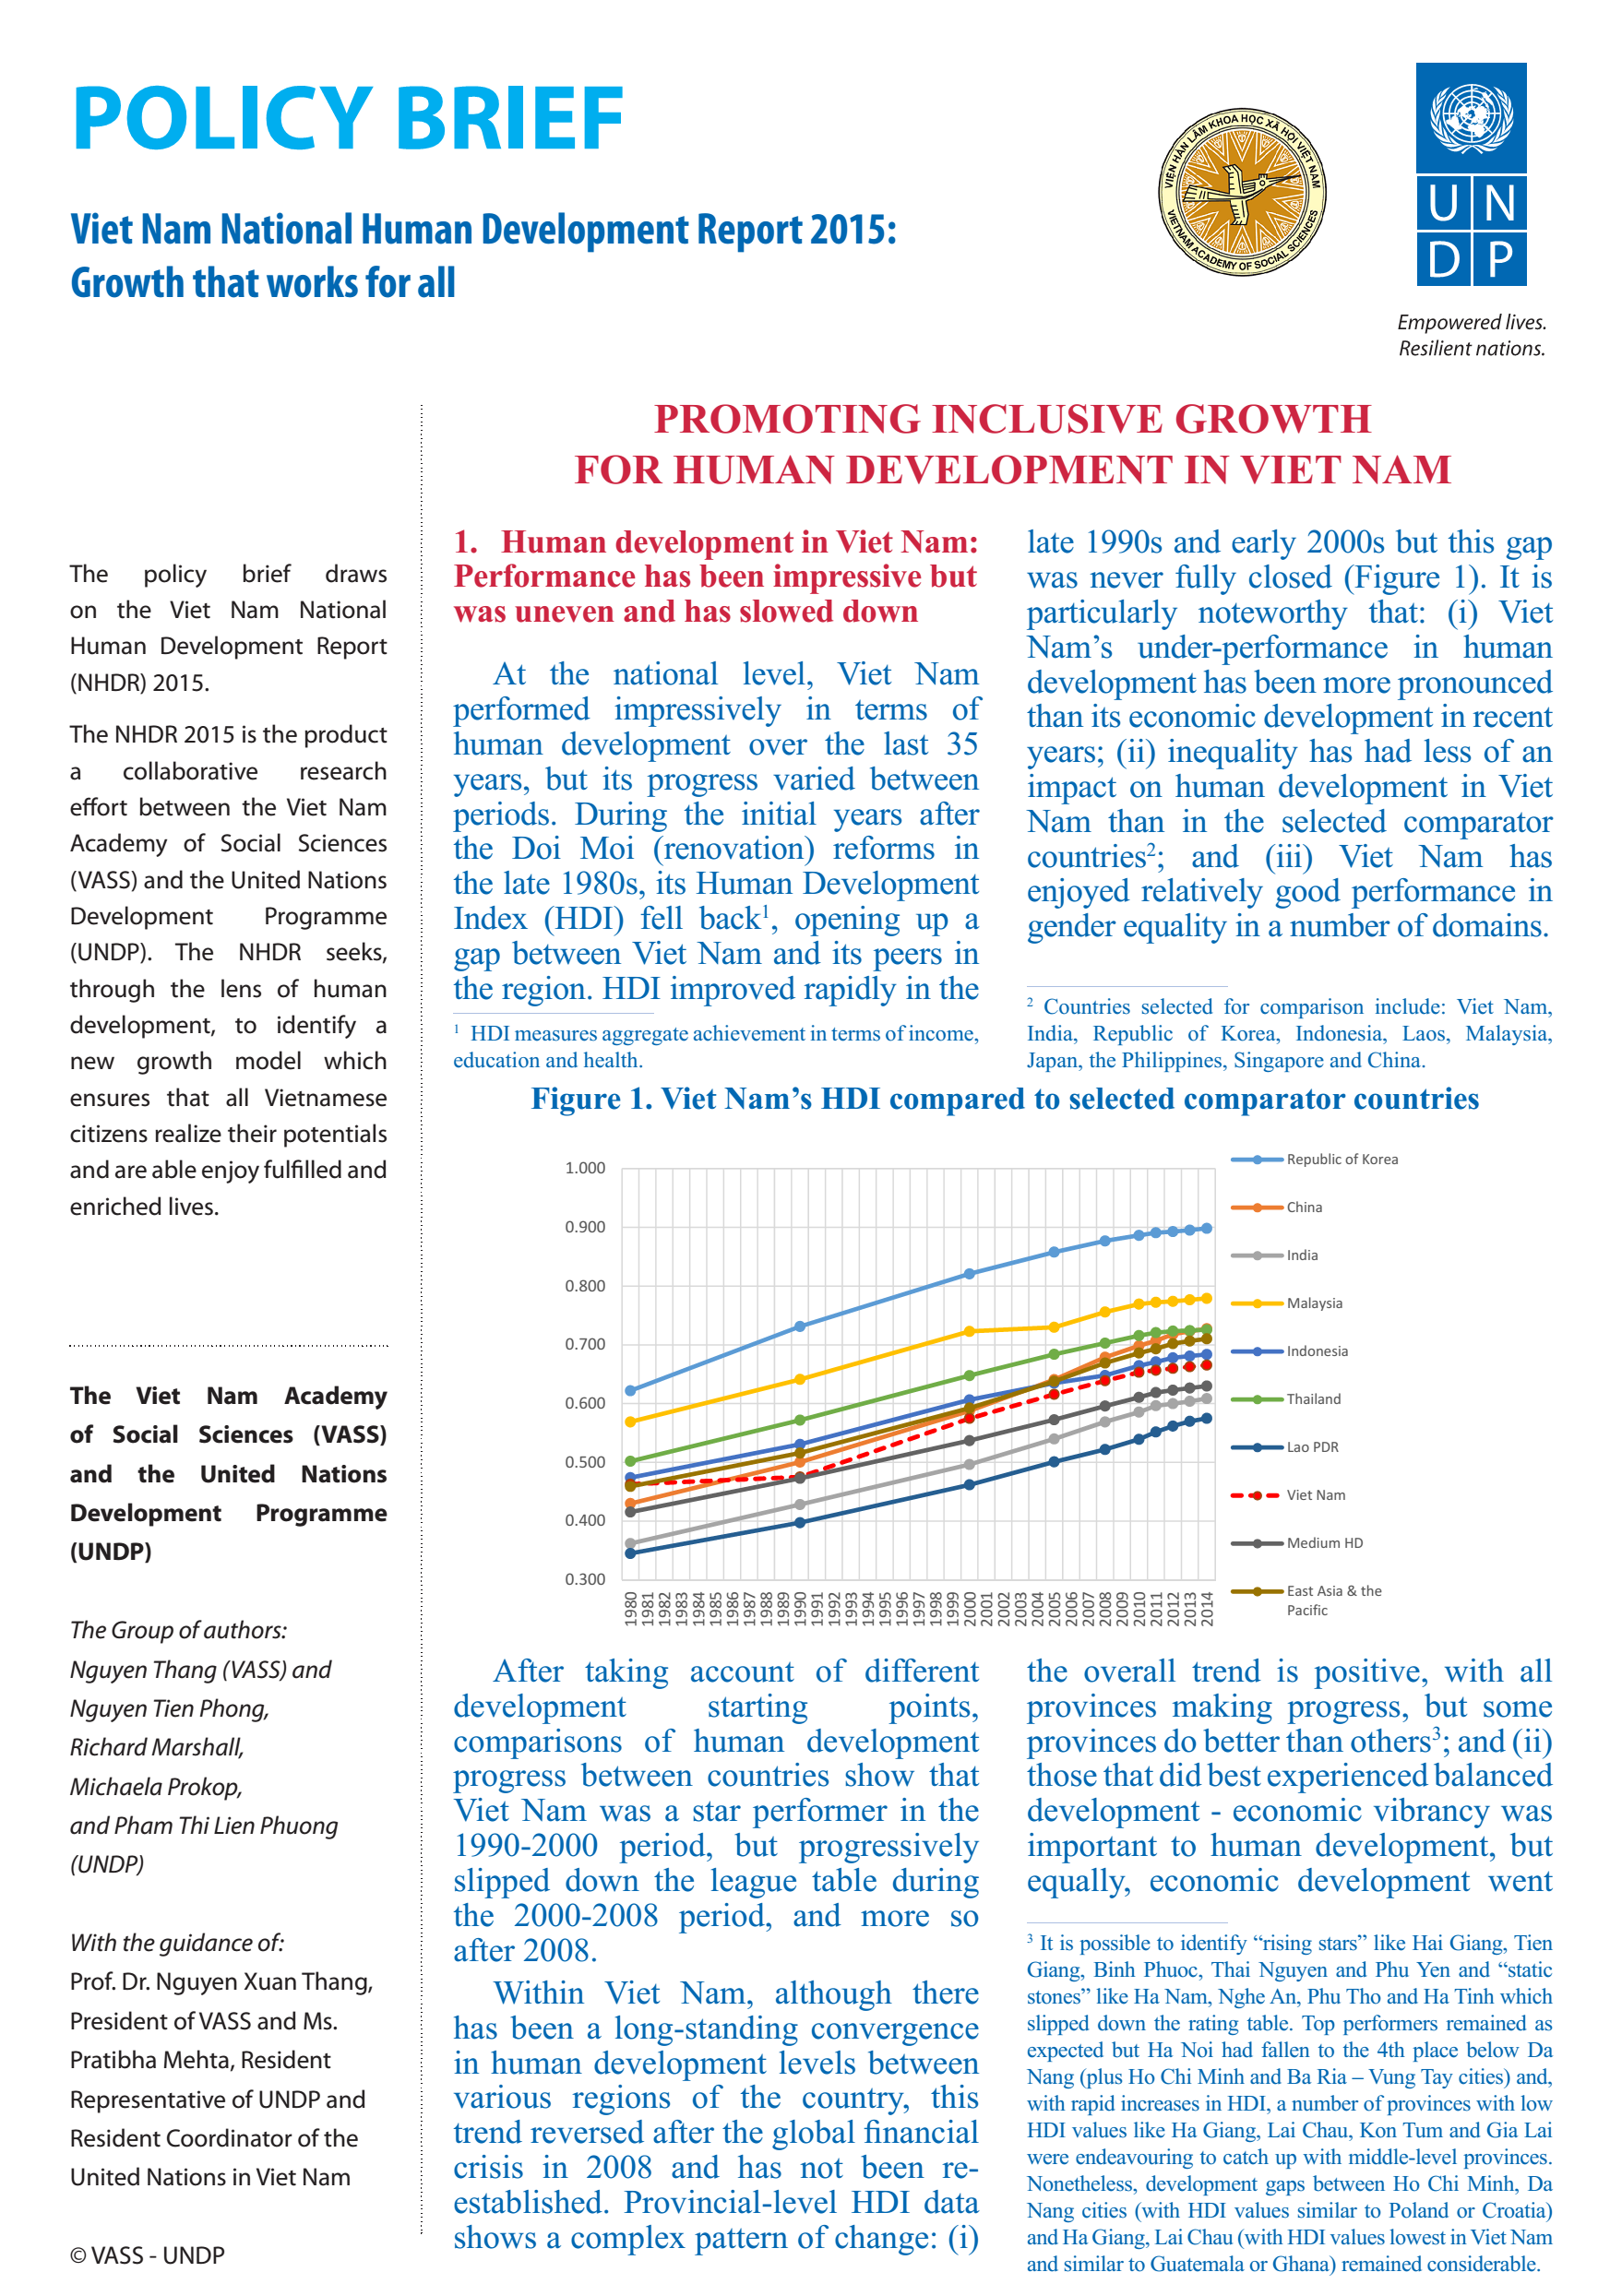 Policy Brief - Viet Nam National Human Development Report 2015 - Growth that works for all